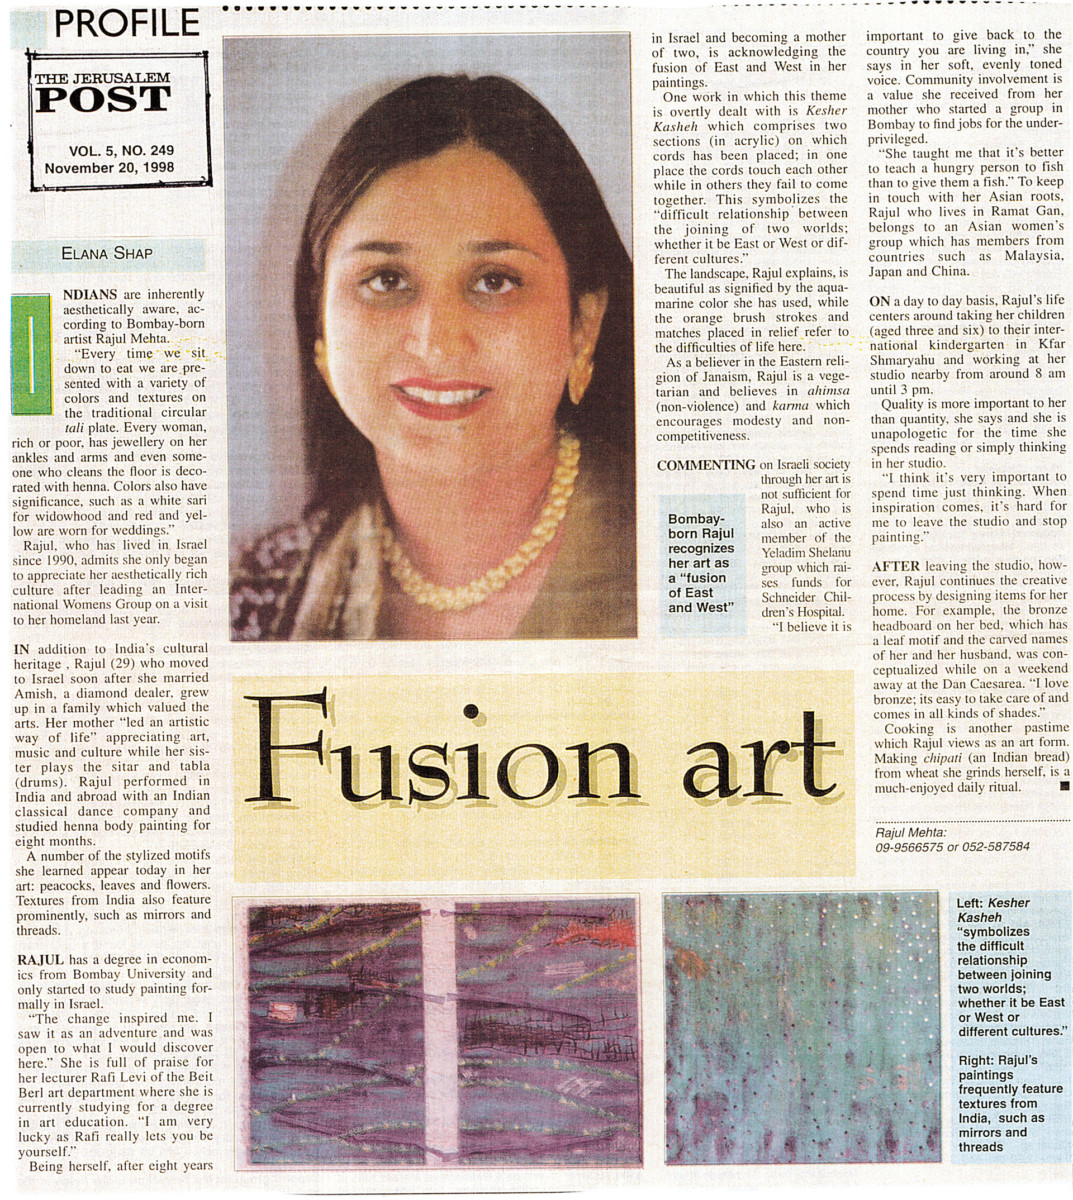 JERUSALEM POST- Fushion Art-20th NOVEMBER 1998